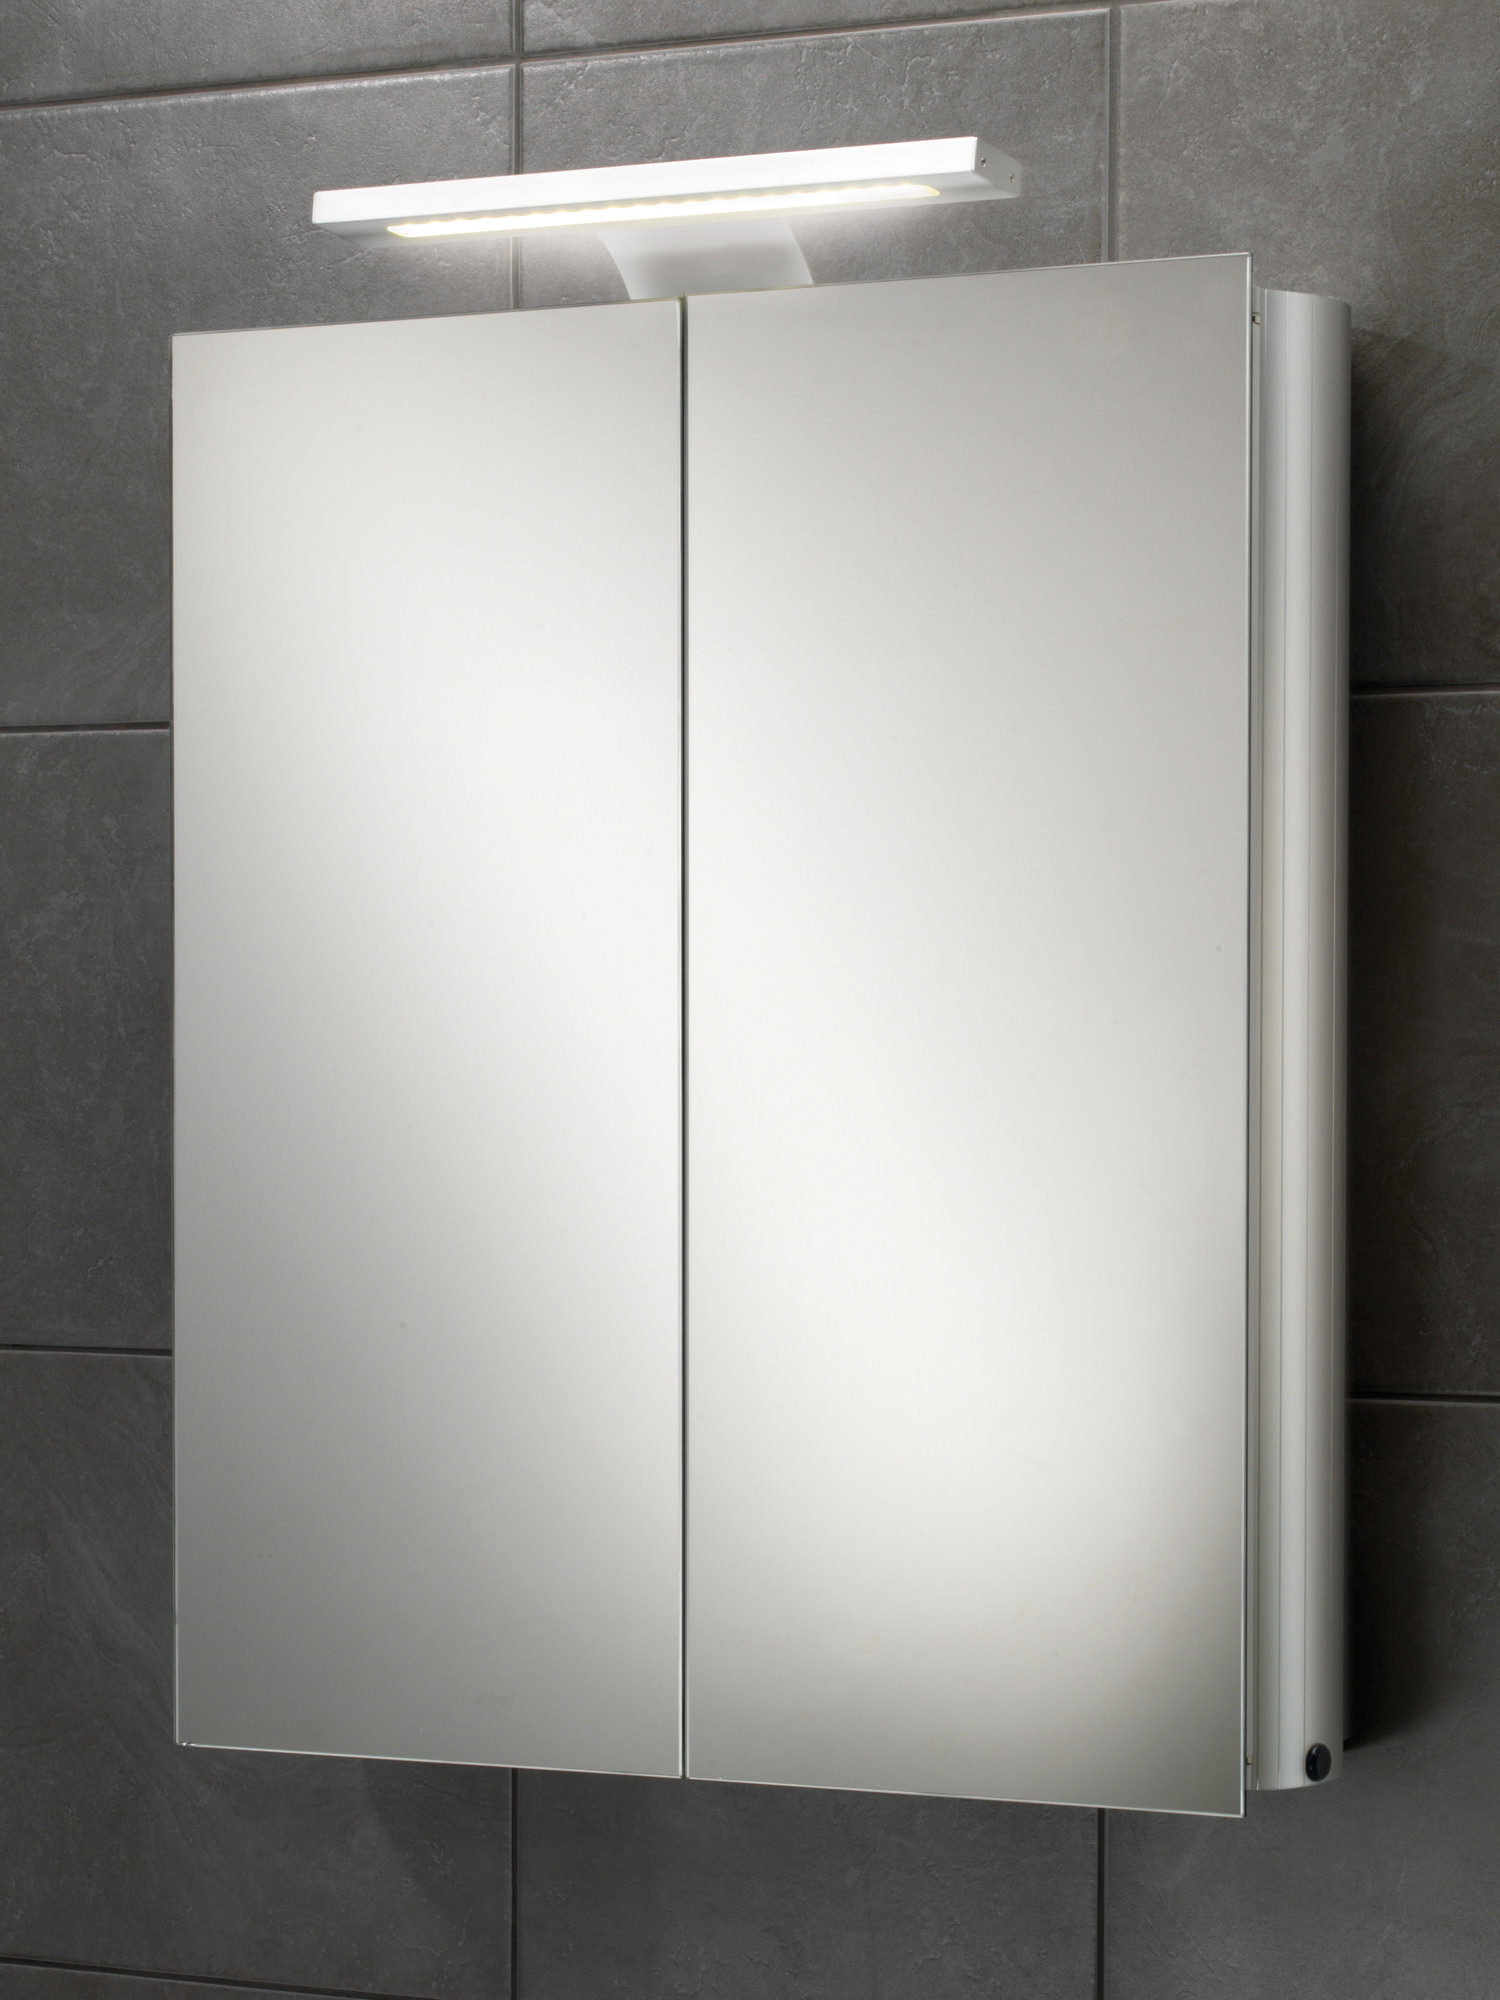 Bathroom Cabinet With Mirror Hib Atomic Led Illuminated Double Door Aluminium Mirrored